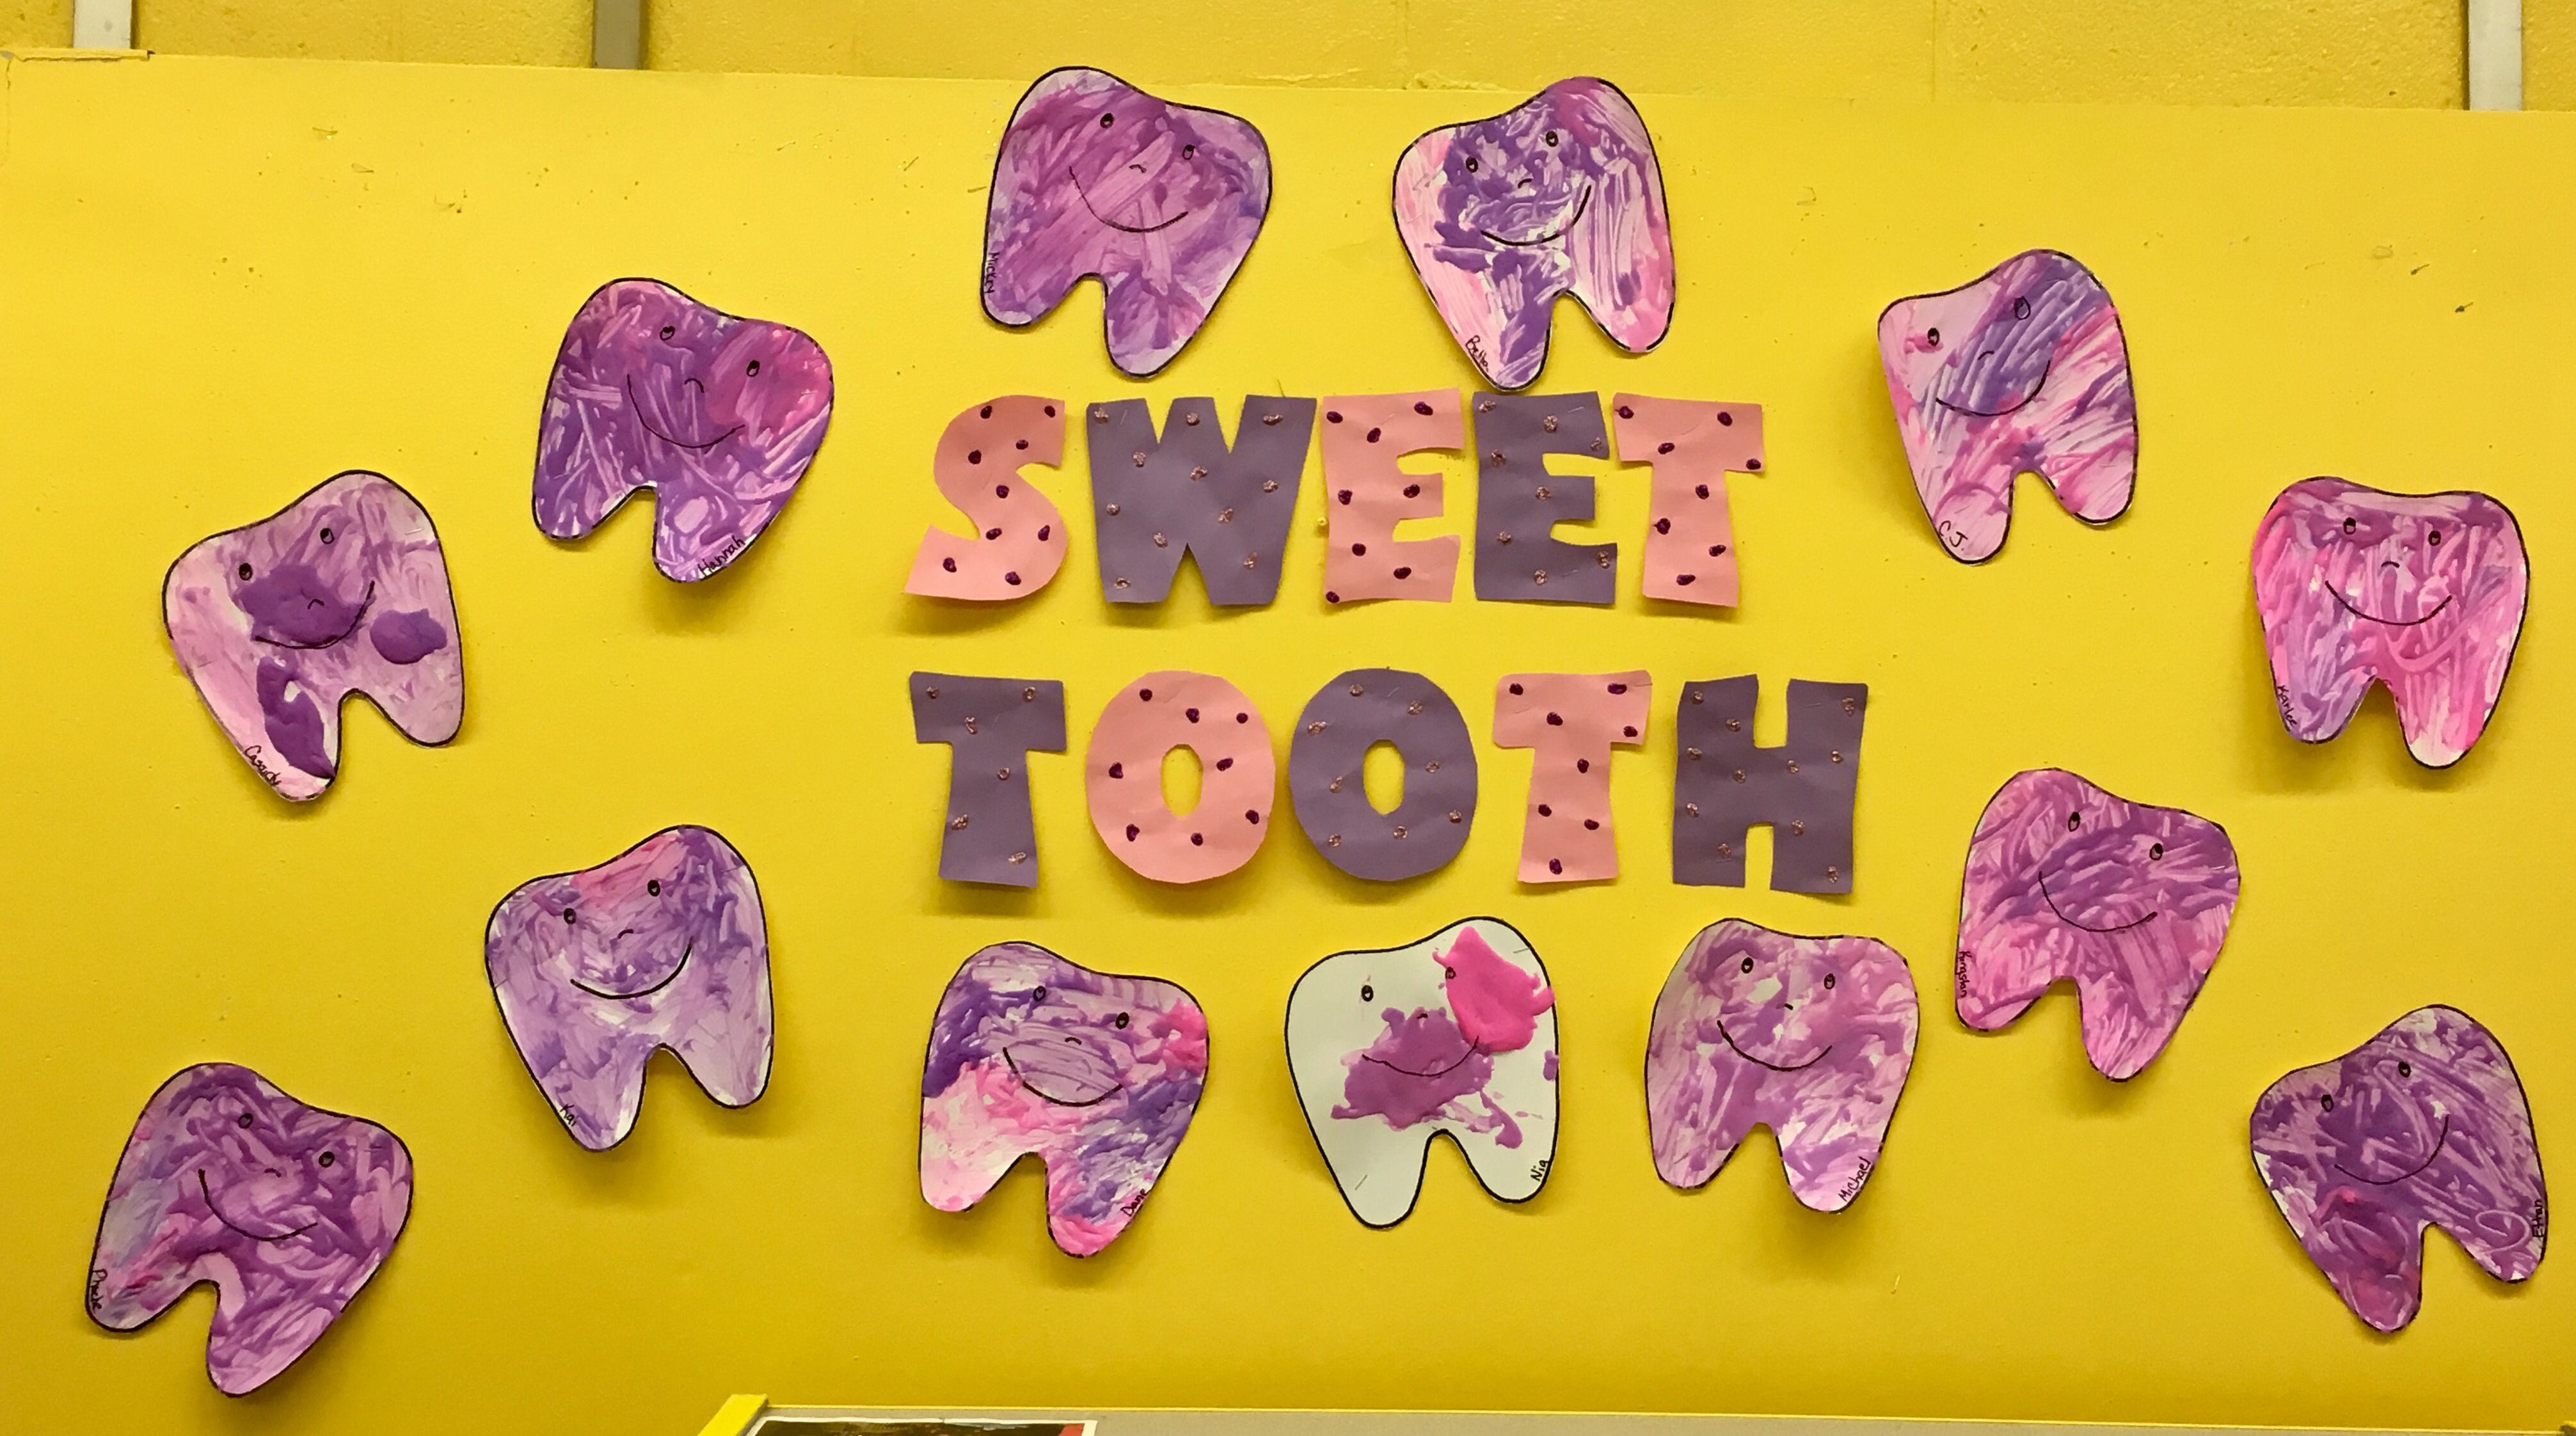 Healthy teeth theme paint with toothbrushes and puffy